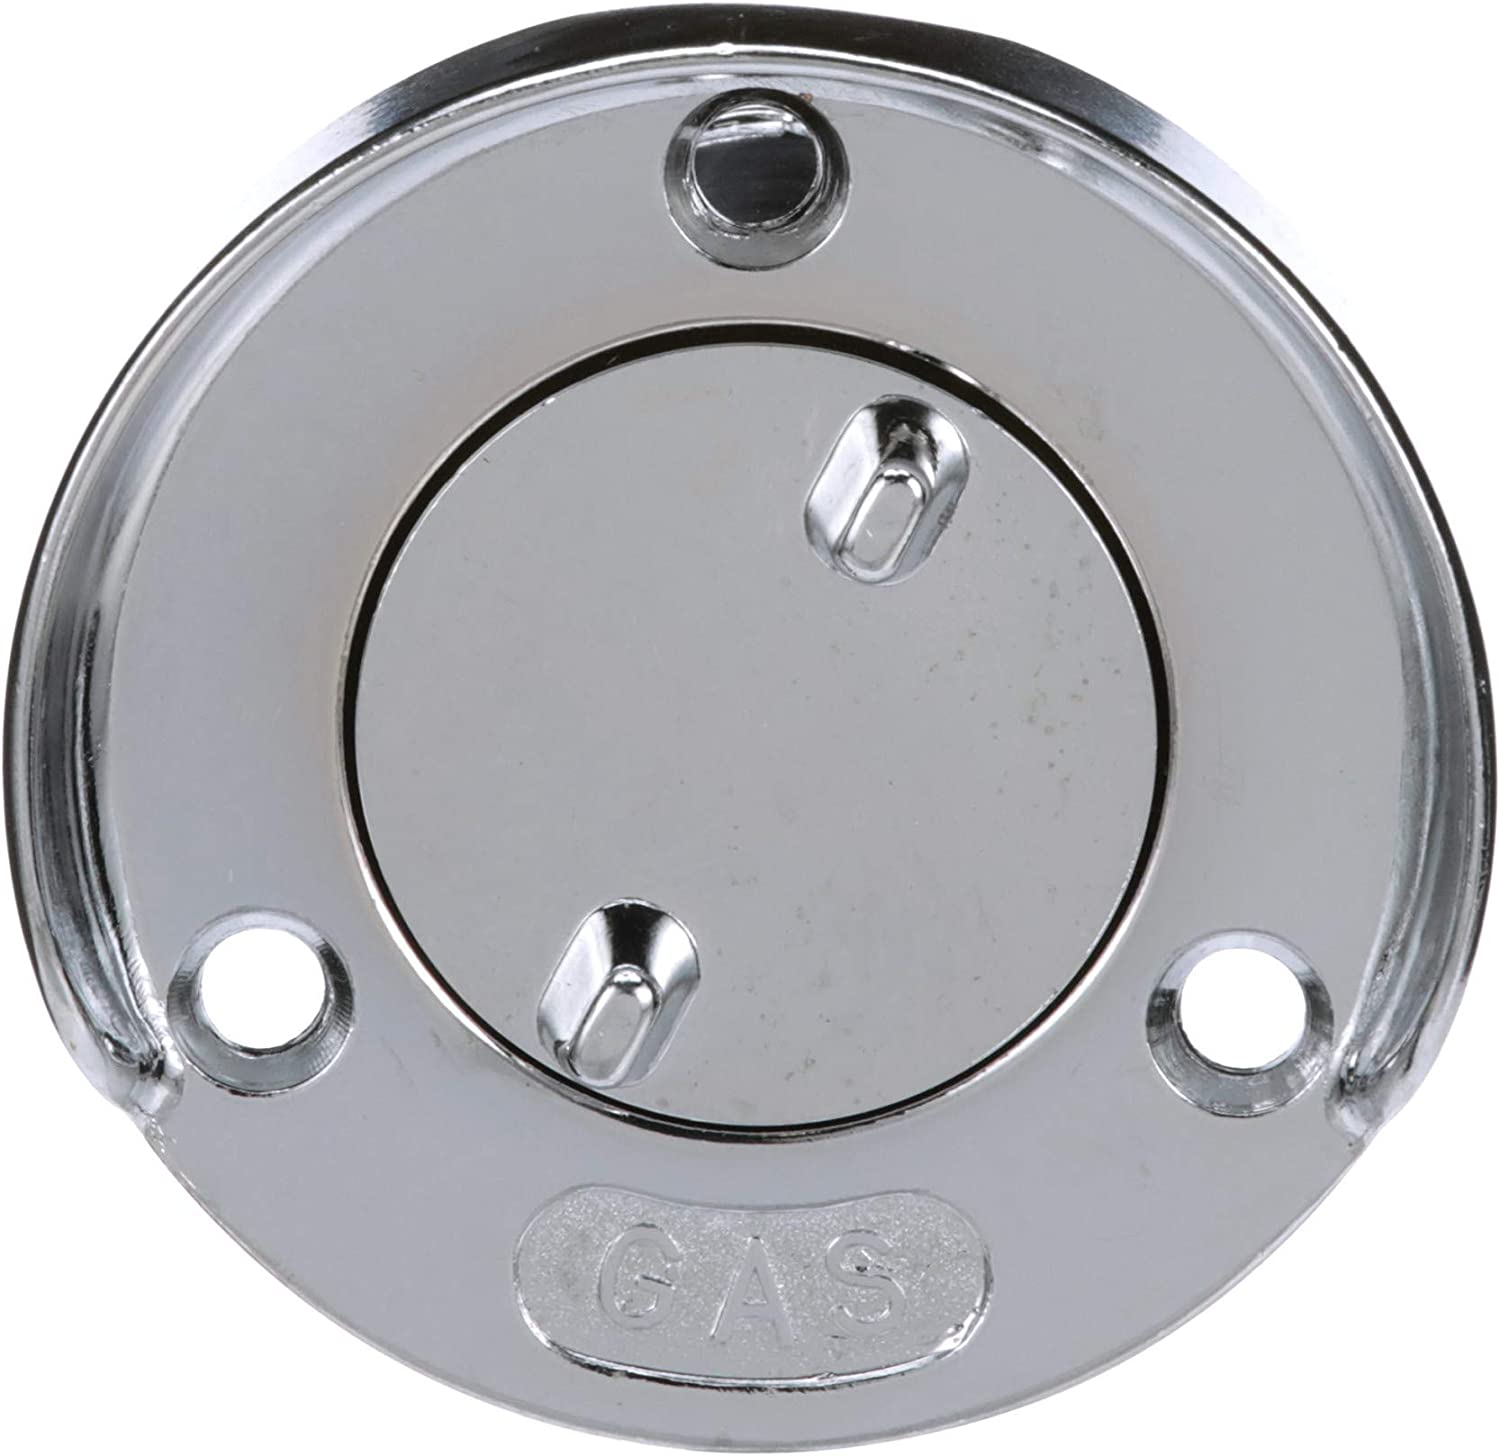 Chrome Plated Zinc Gas Deck Fill with Splash Guard /& Cap Chain SeaDog 351750-1